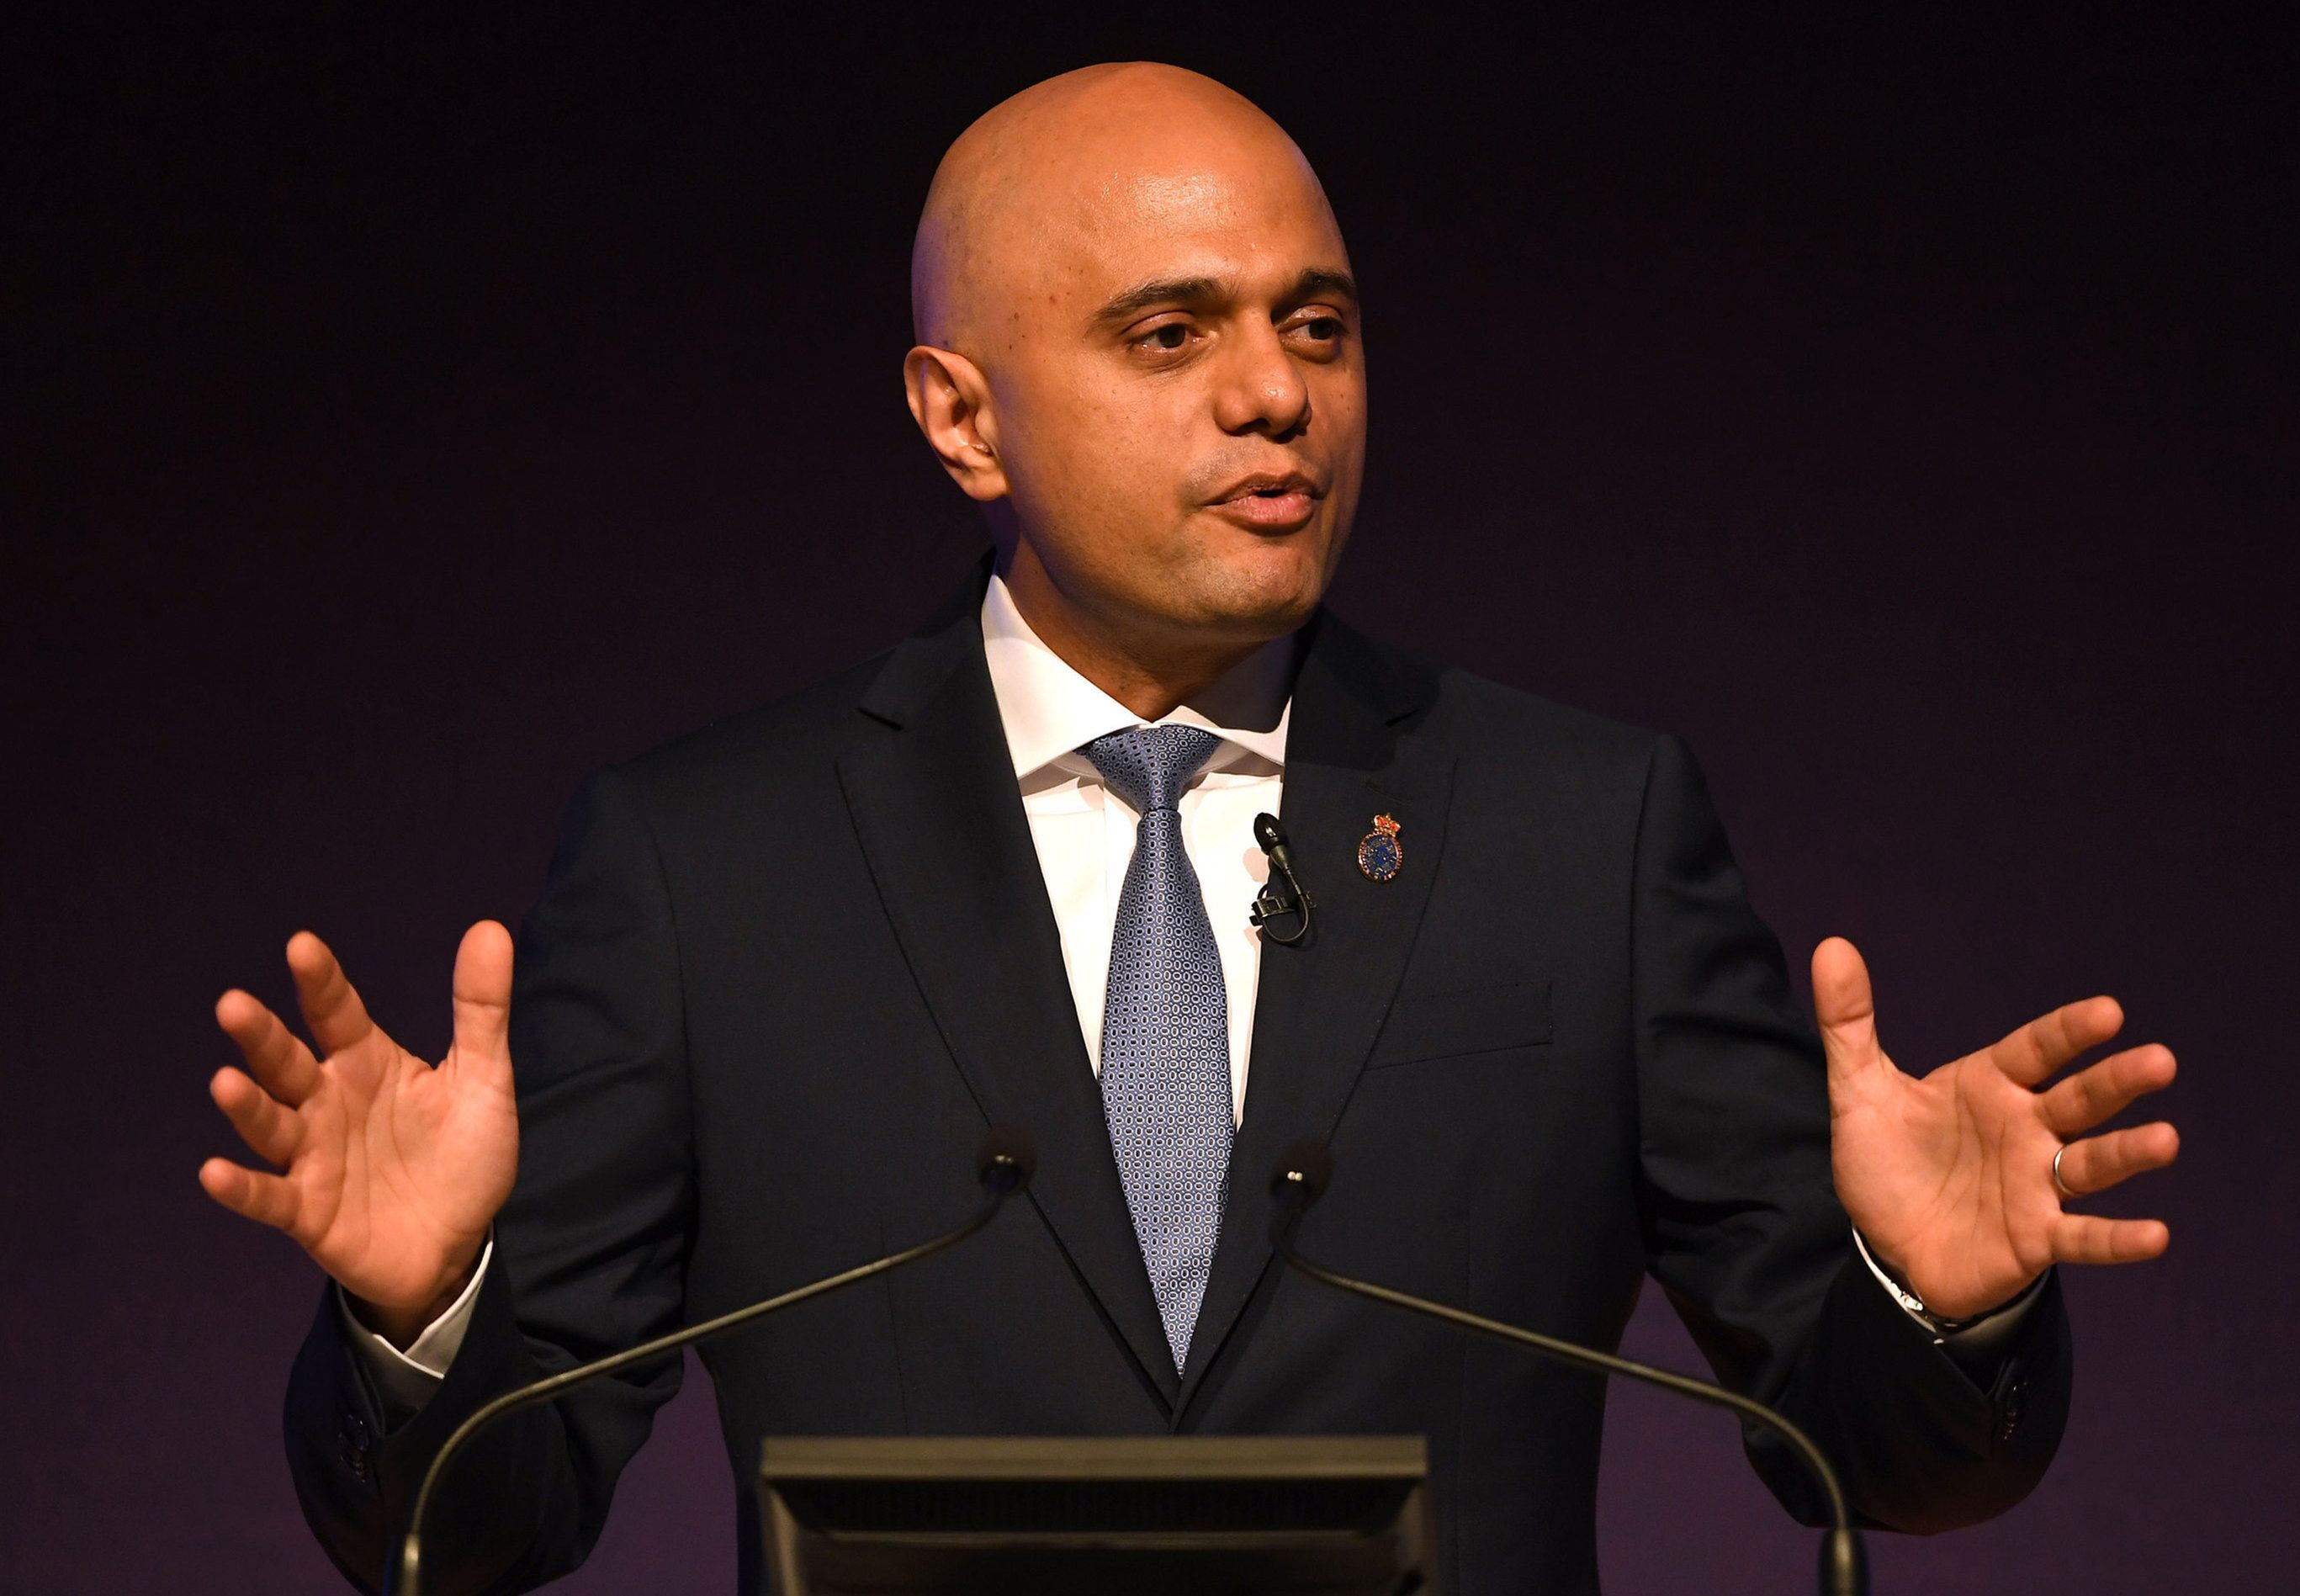 Medical Cannabis Could Be Legalised, Sajid Javid